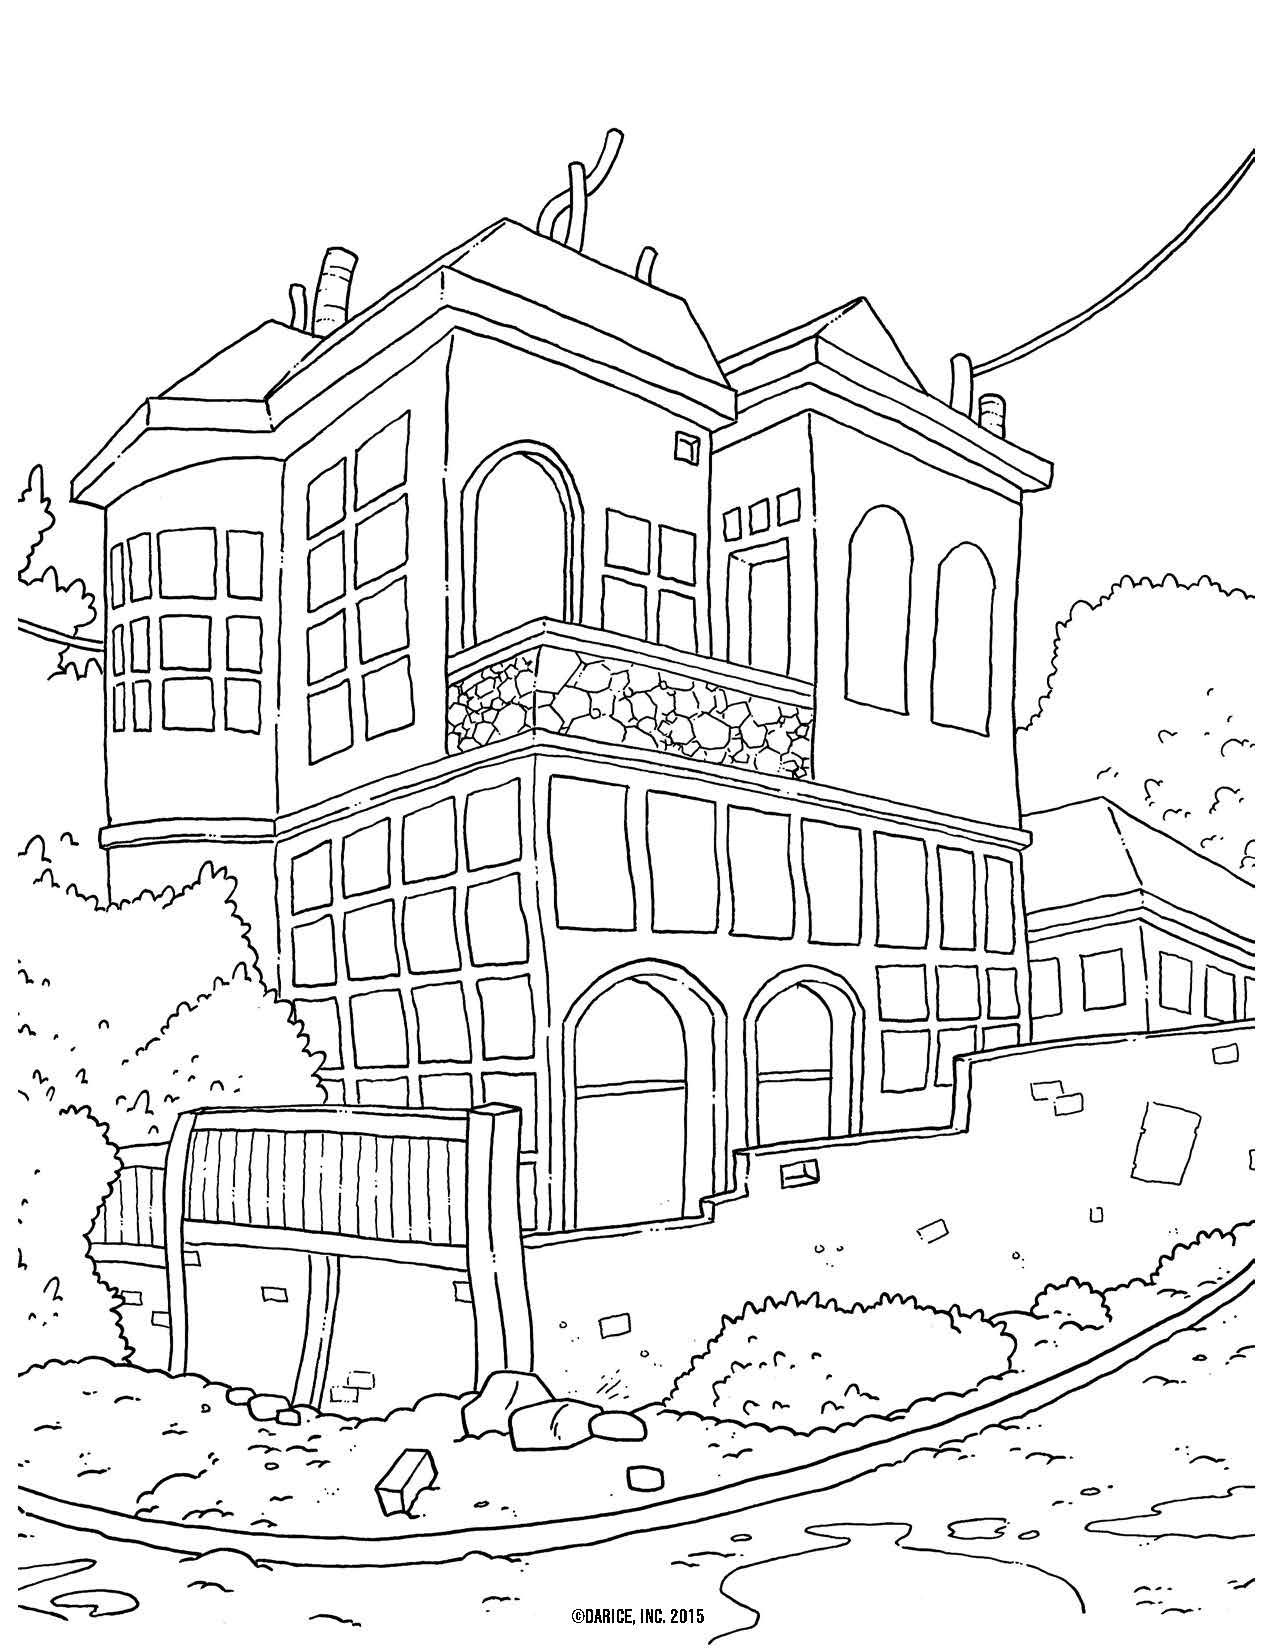 9 Free Printable Adult Coloring Pages | Pat Catan\'s Blog | Paper Art ...